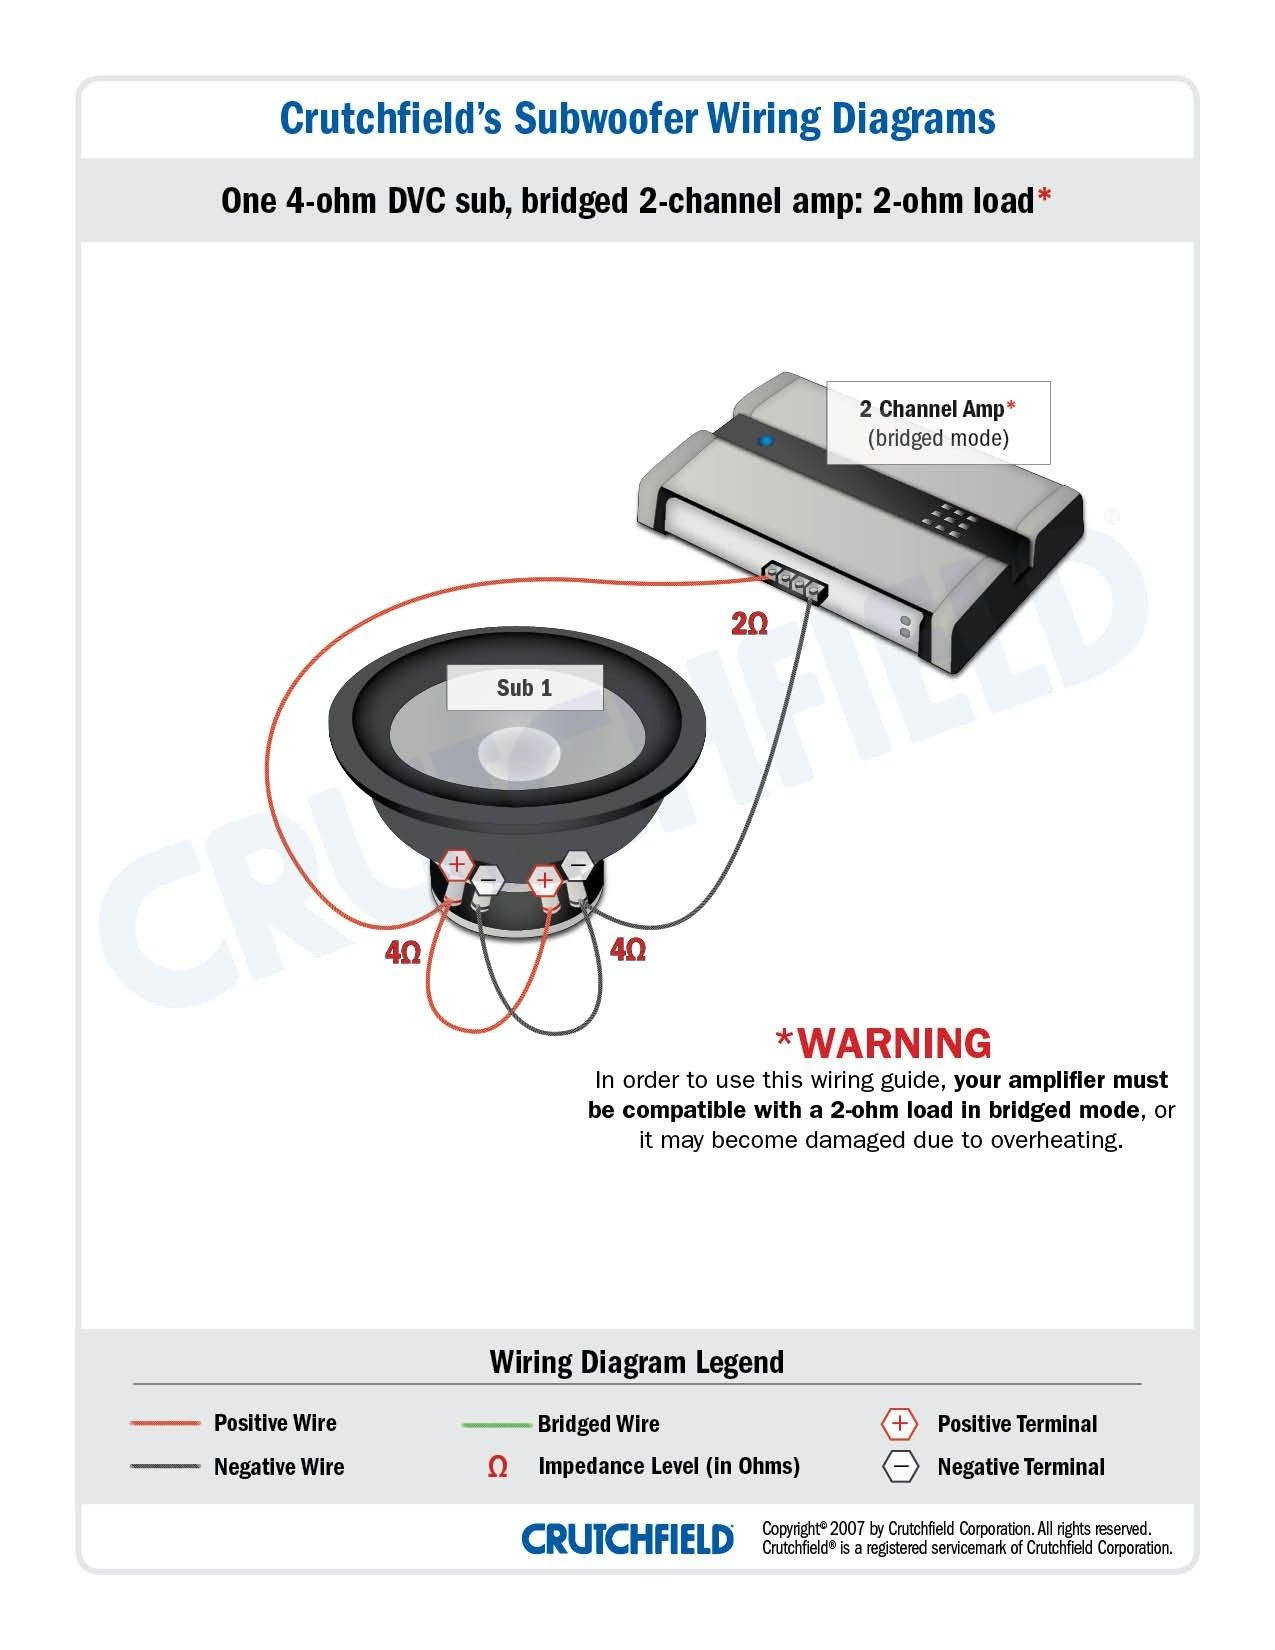 Subwoofer Wiring Diagram Dual 2 Ohm In 2020 Subwoofer Wiring Car Audio Car Audio Subwoofers